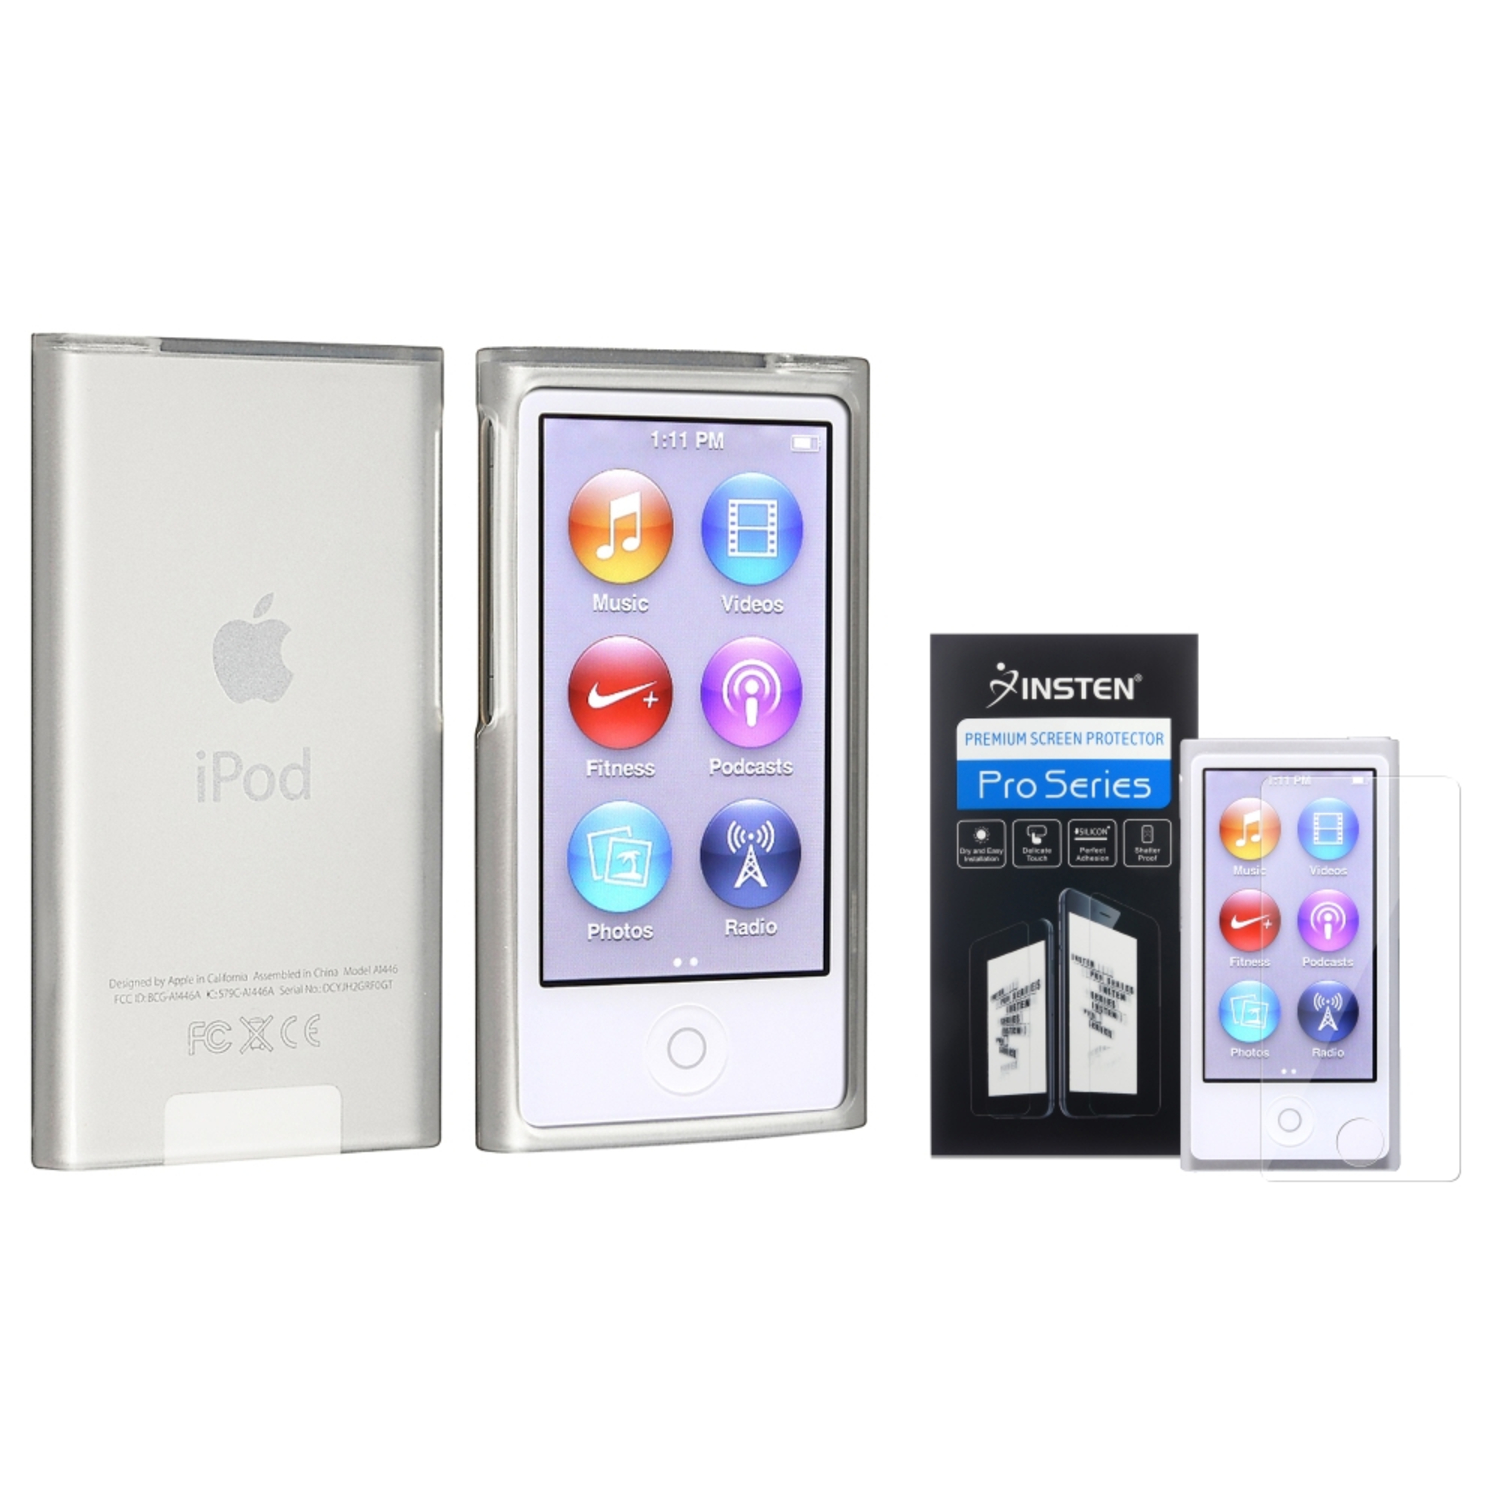 Insten Frost Clear TPU Case+Reusable Screen Protector For iPod Nano 7 7th 7G Generation